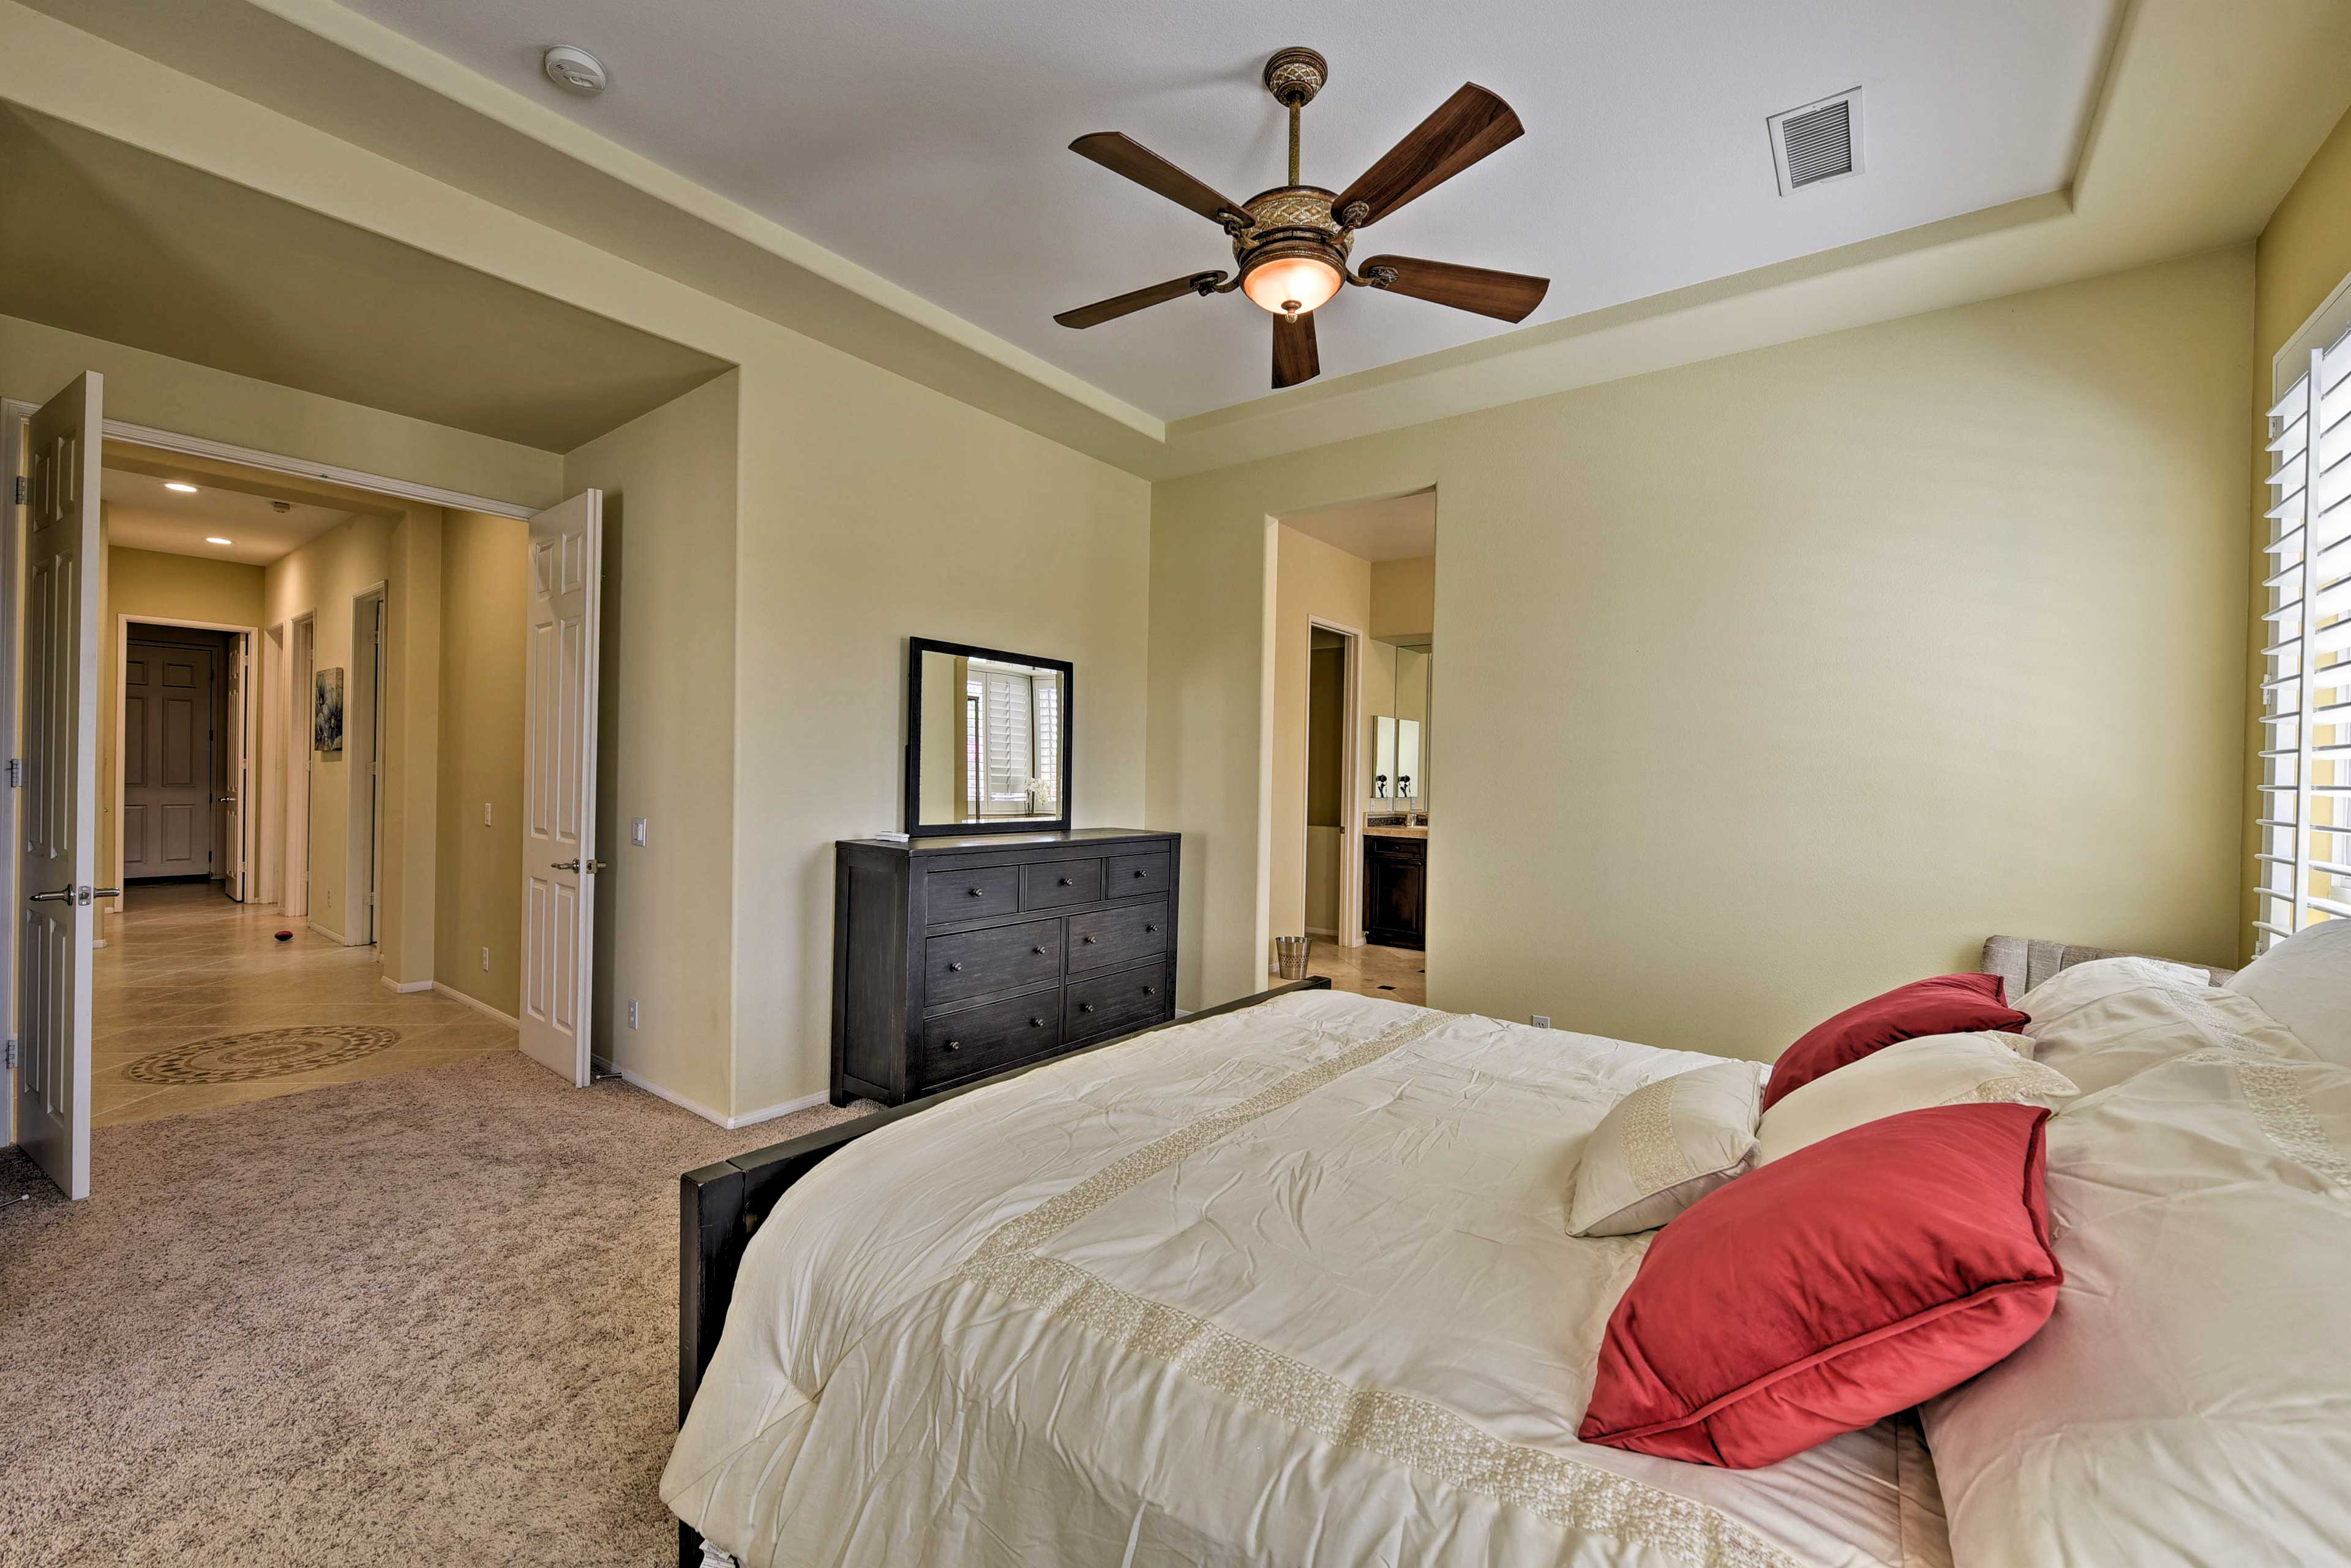 You'll love the constant breeze from the ceiling fan.